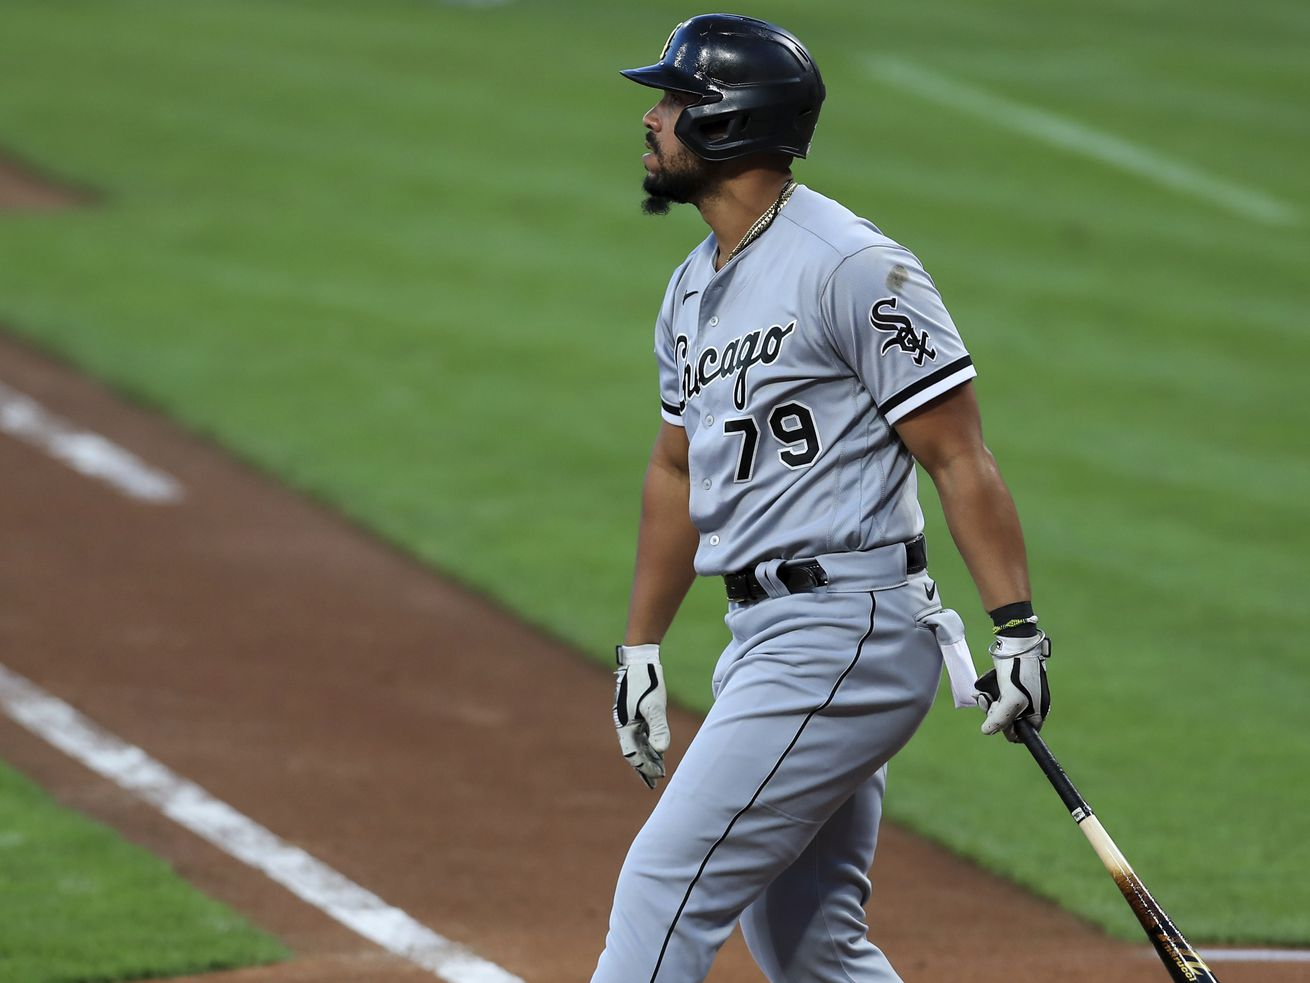 Reds jump on Stiever with long ball early, defeat White Sox 7-1